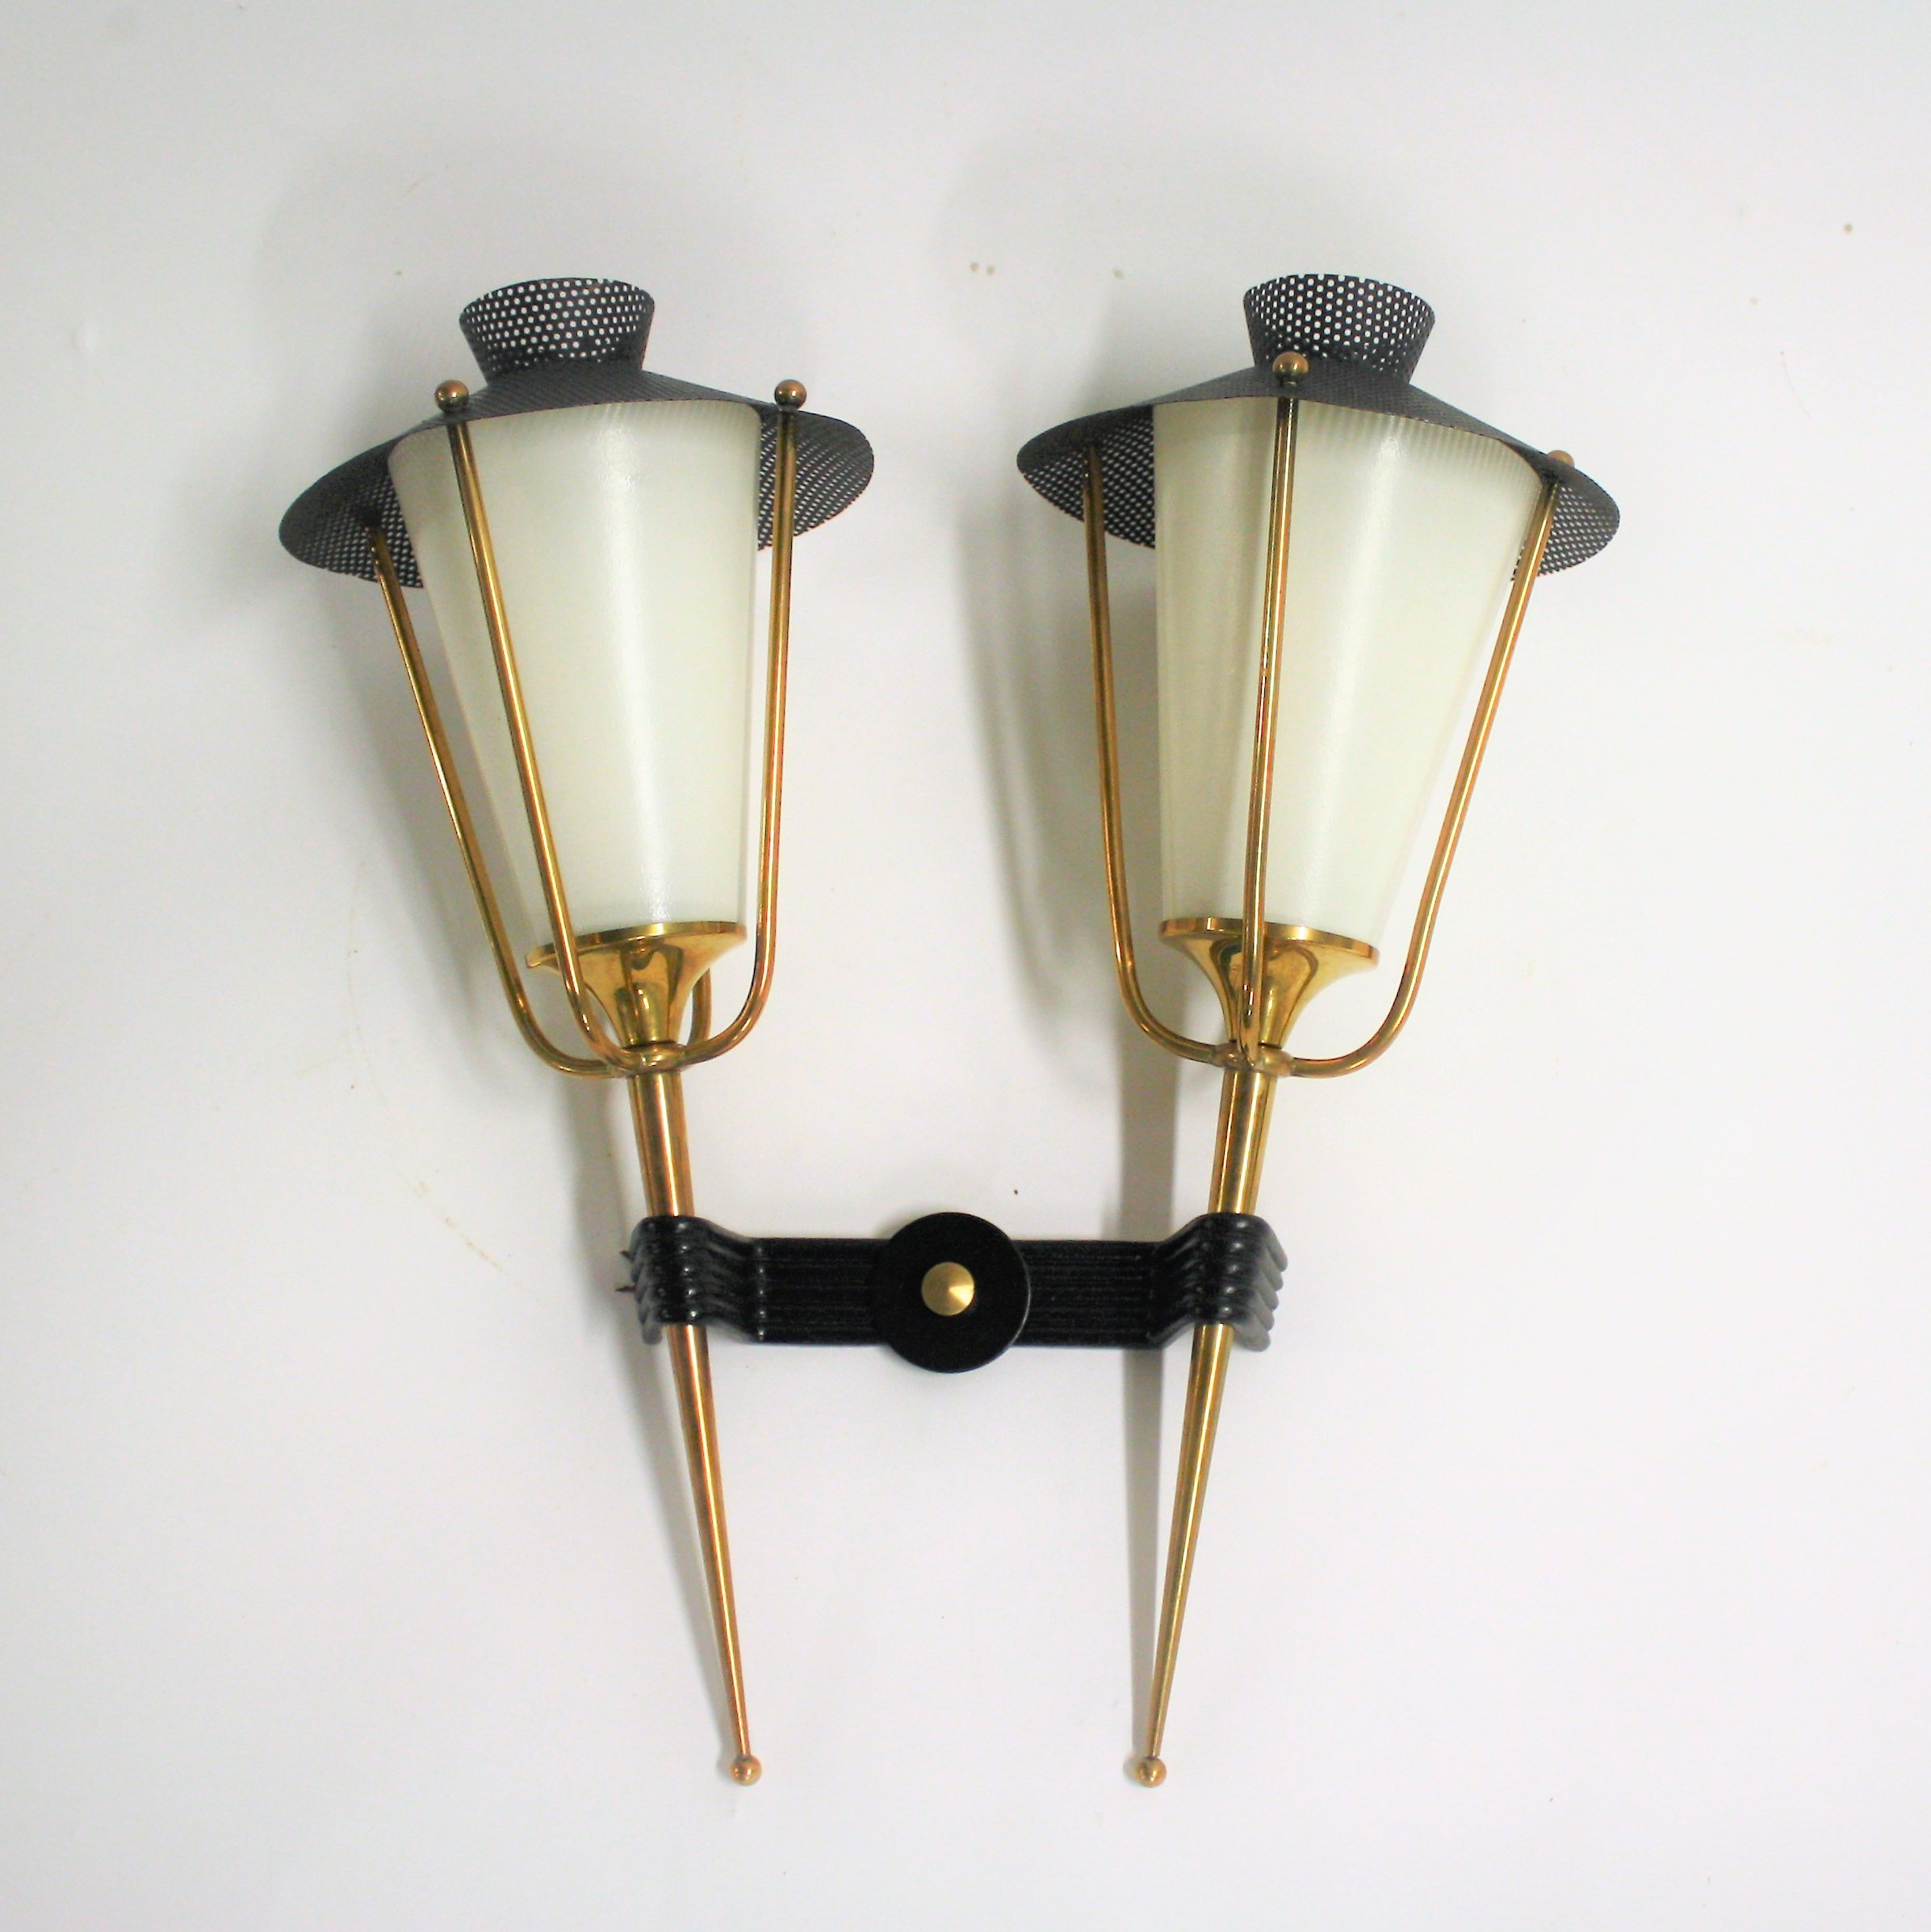 Vintage wall sconce by maison arlus 1950s